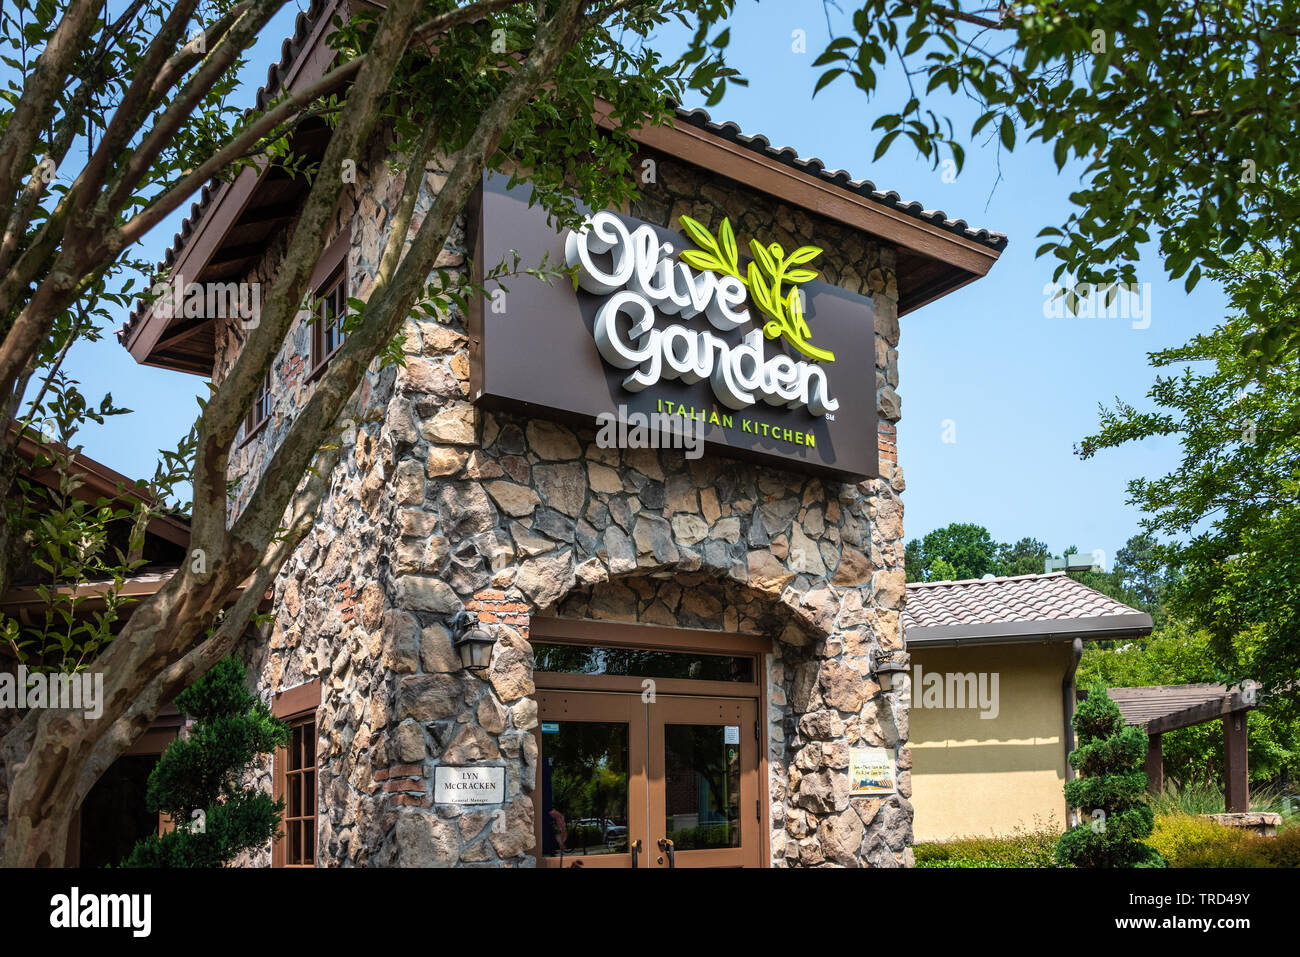 Olive Garden Restaurant High Resolution Stock Photography And Images Alamy